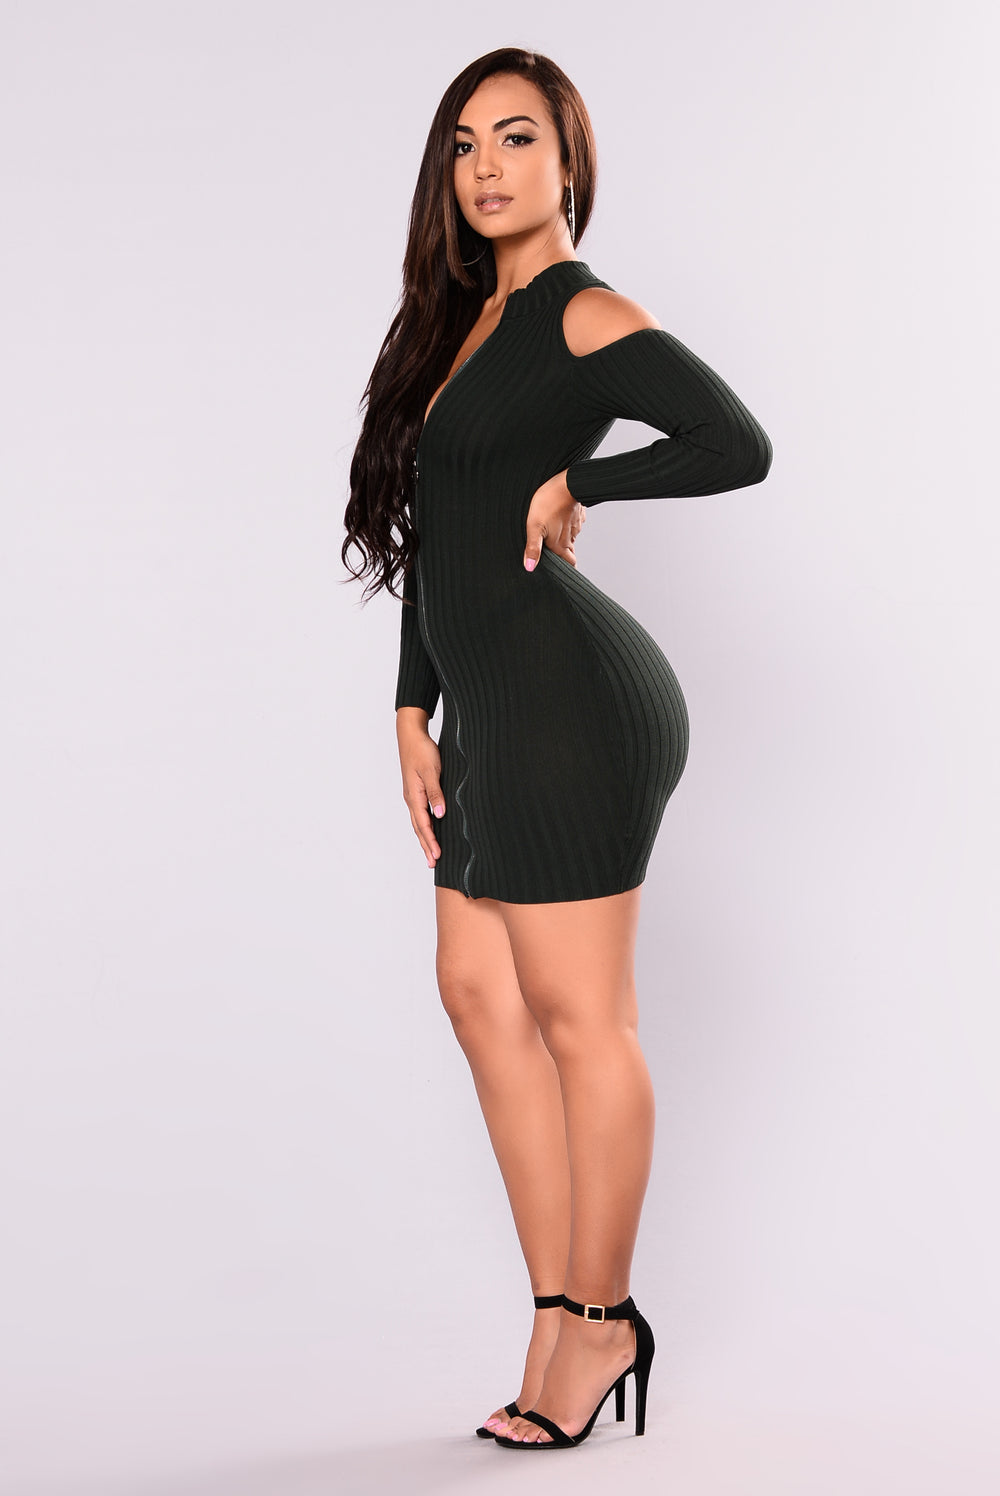 Relationship Status Cold Shoulder Dress - Hunter